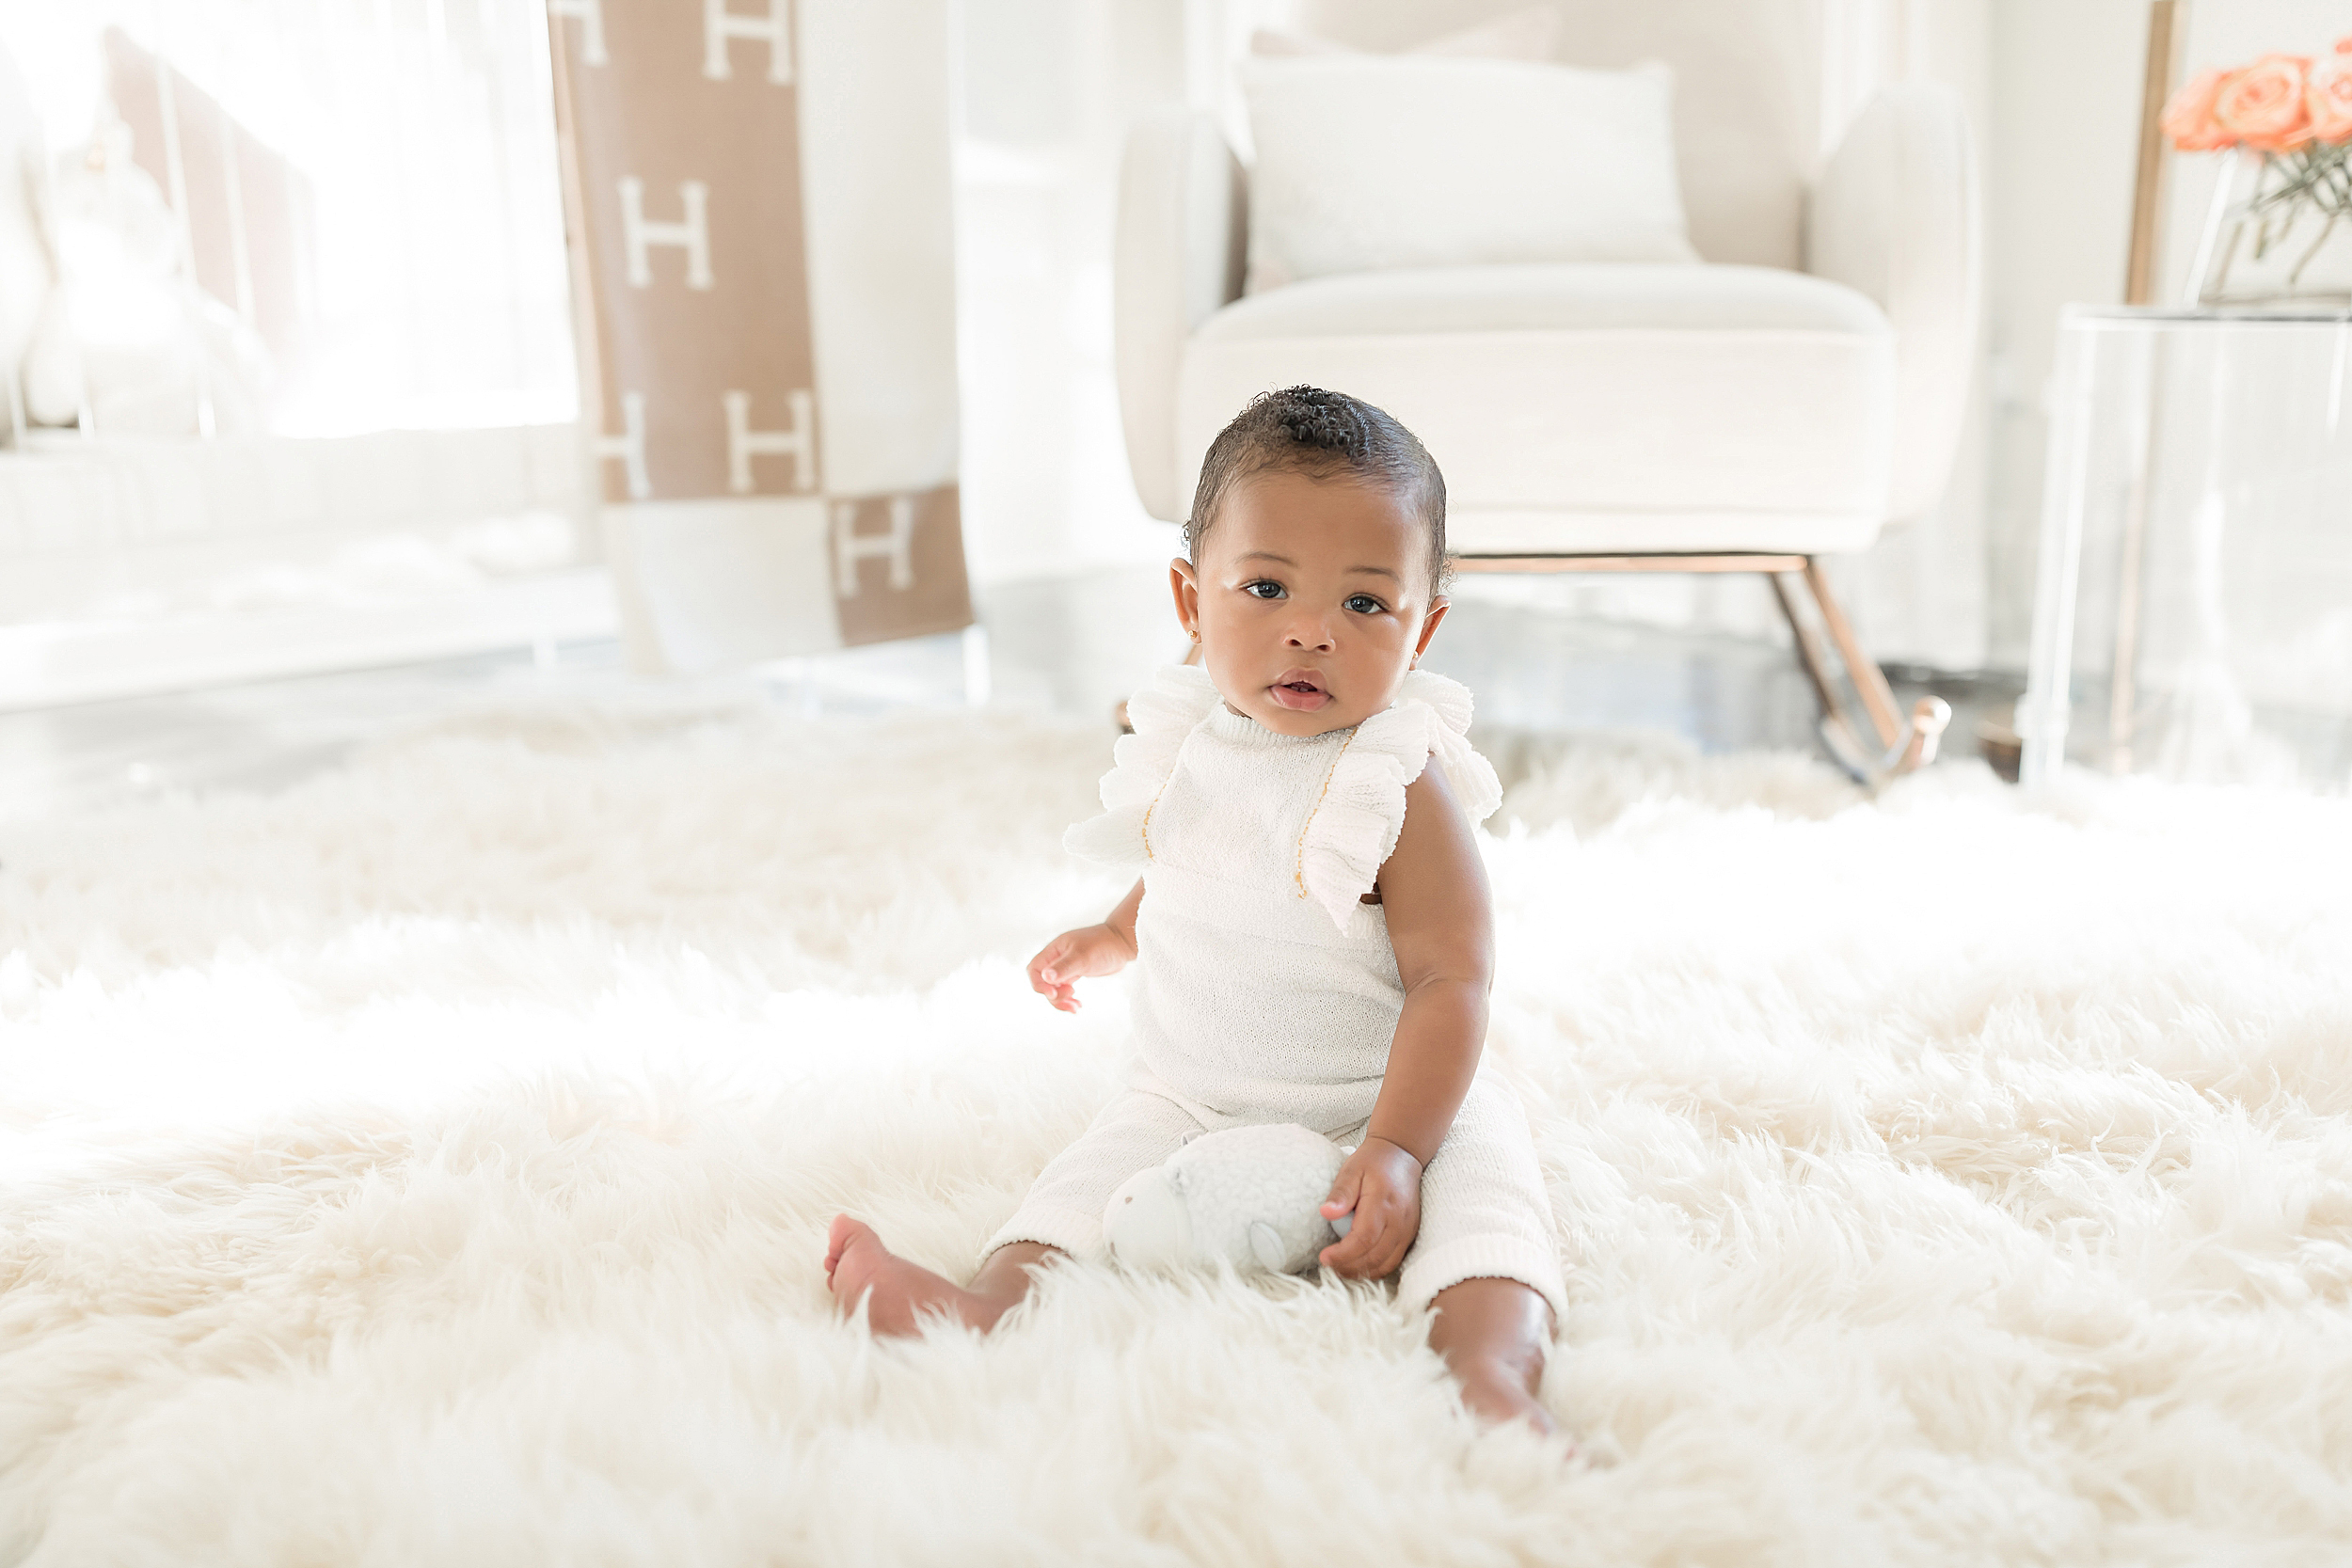 atlanta-buckhead-brookhaven-decatur-lily-sophia-photography--photographer-portraits-grant-park-intown-six-month-baby-girl-labradoodle-in-home-lifestyle-photography_0021.jpg